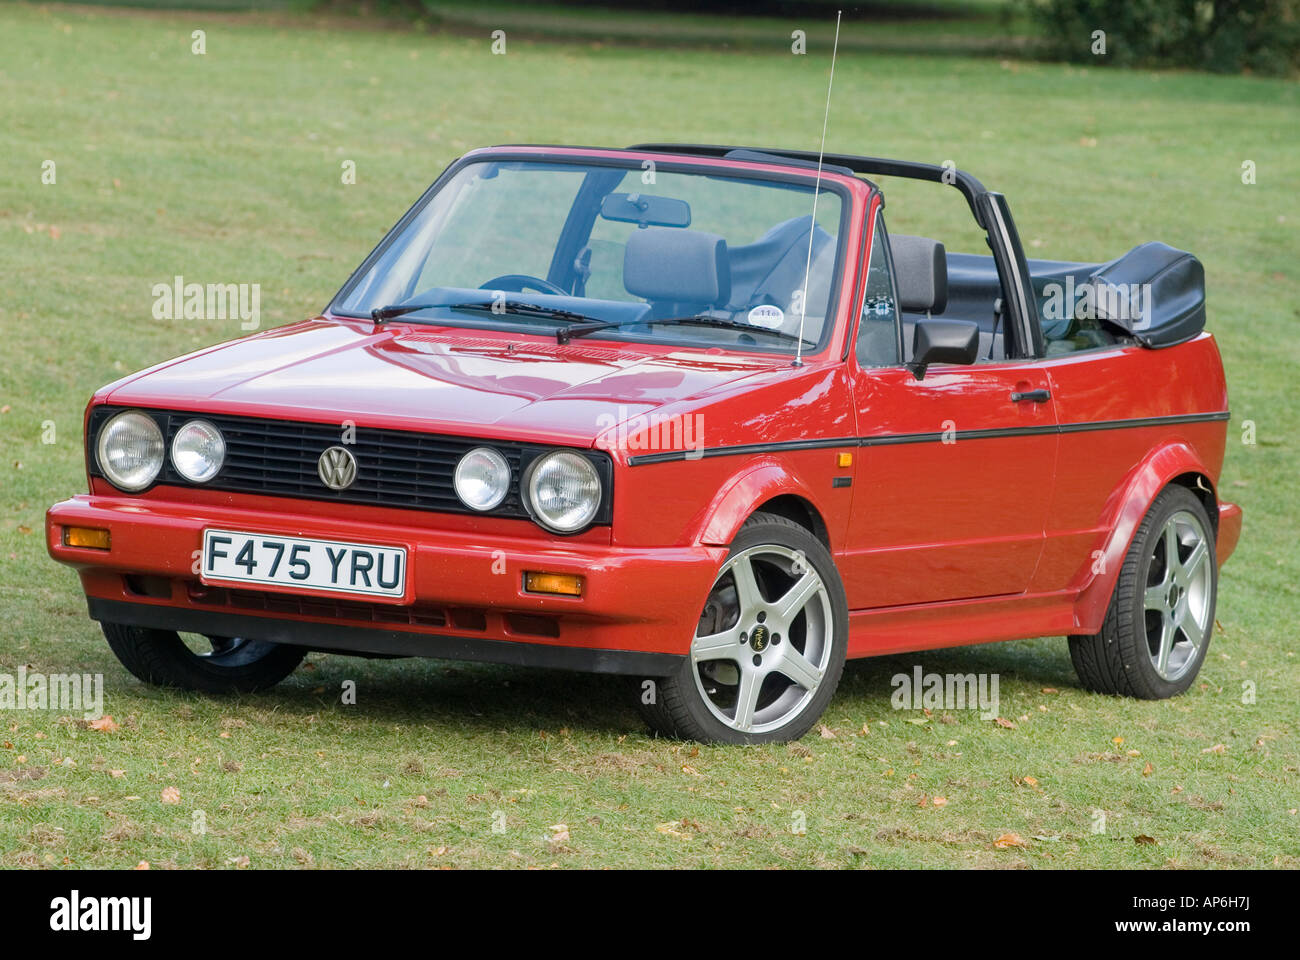 red 1989 vw clipper cabriolet car stock photo 15692069 alamy